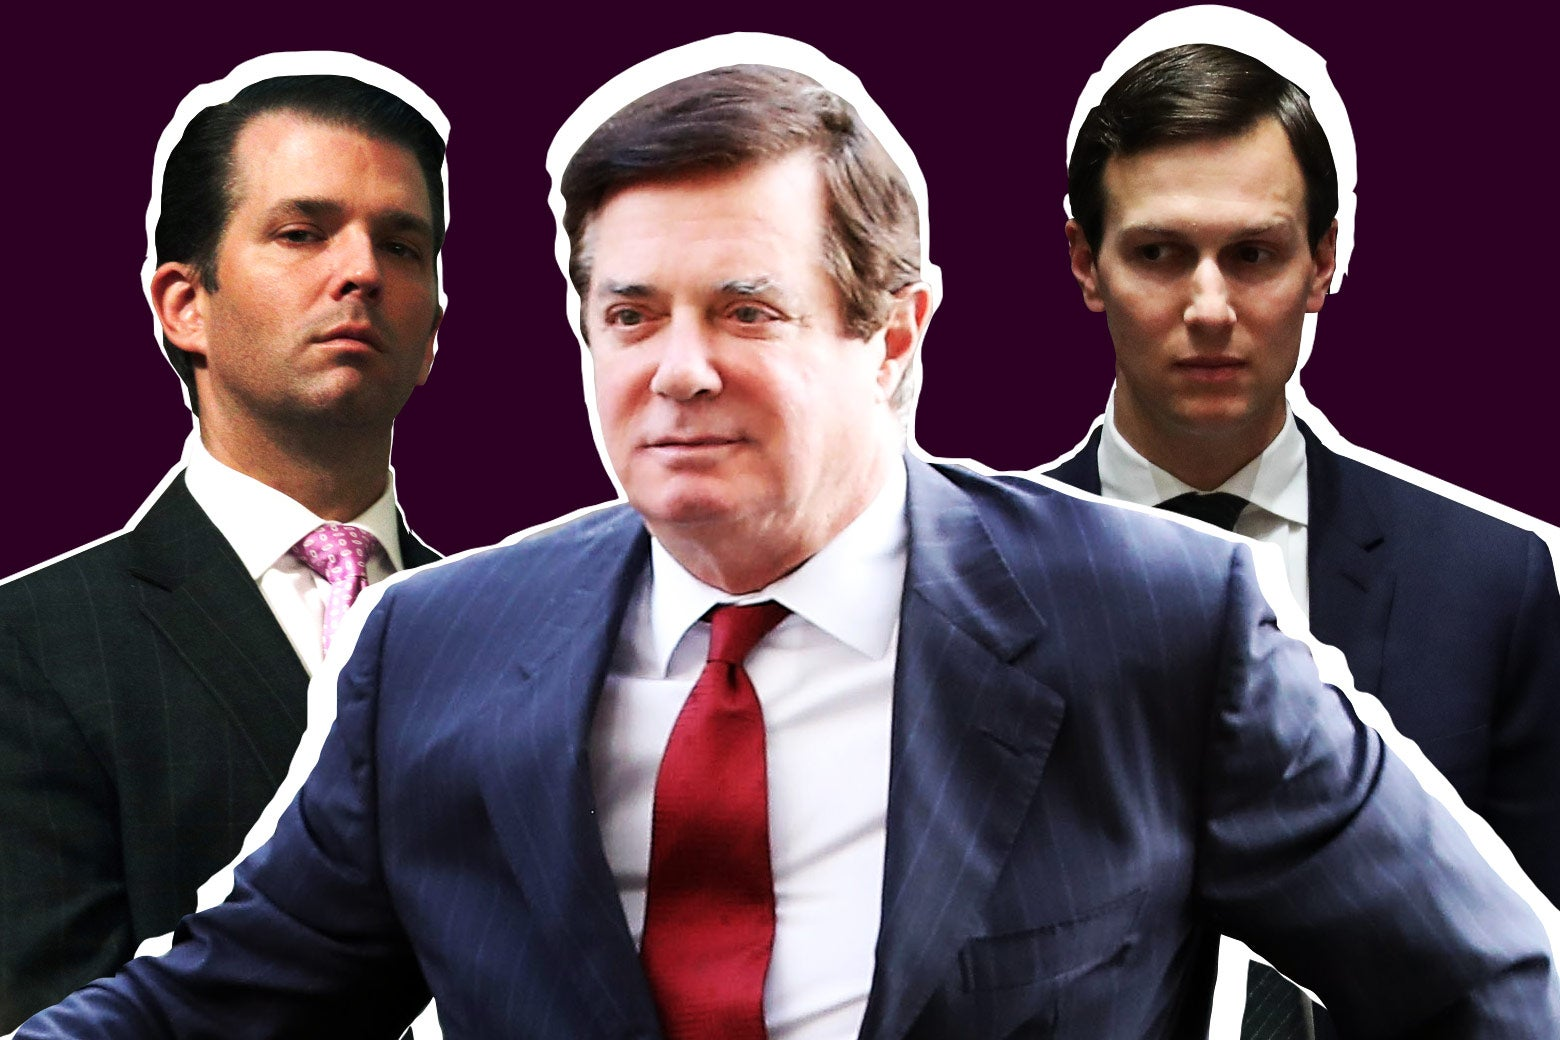 Donald Trump Jr., Paul Manafort and White House Senior Advisor Jared Kushner